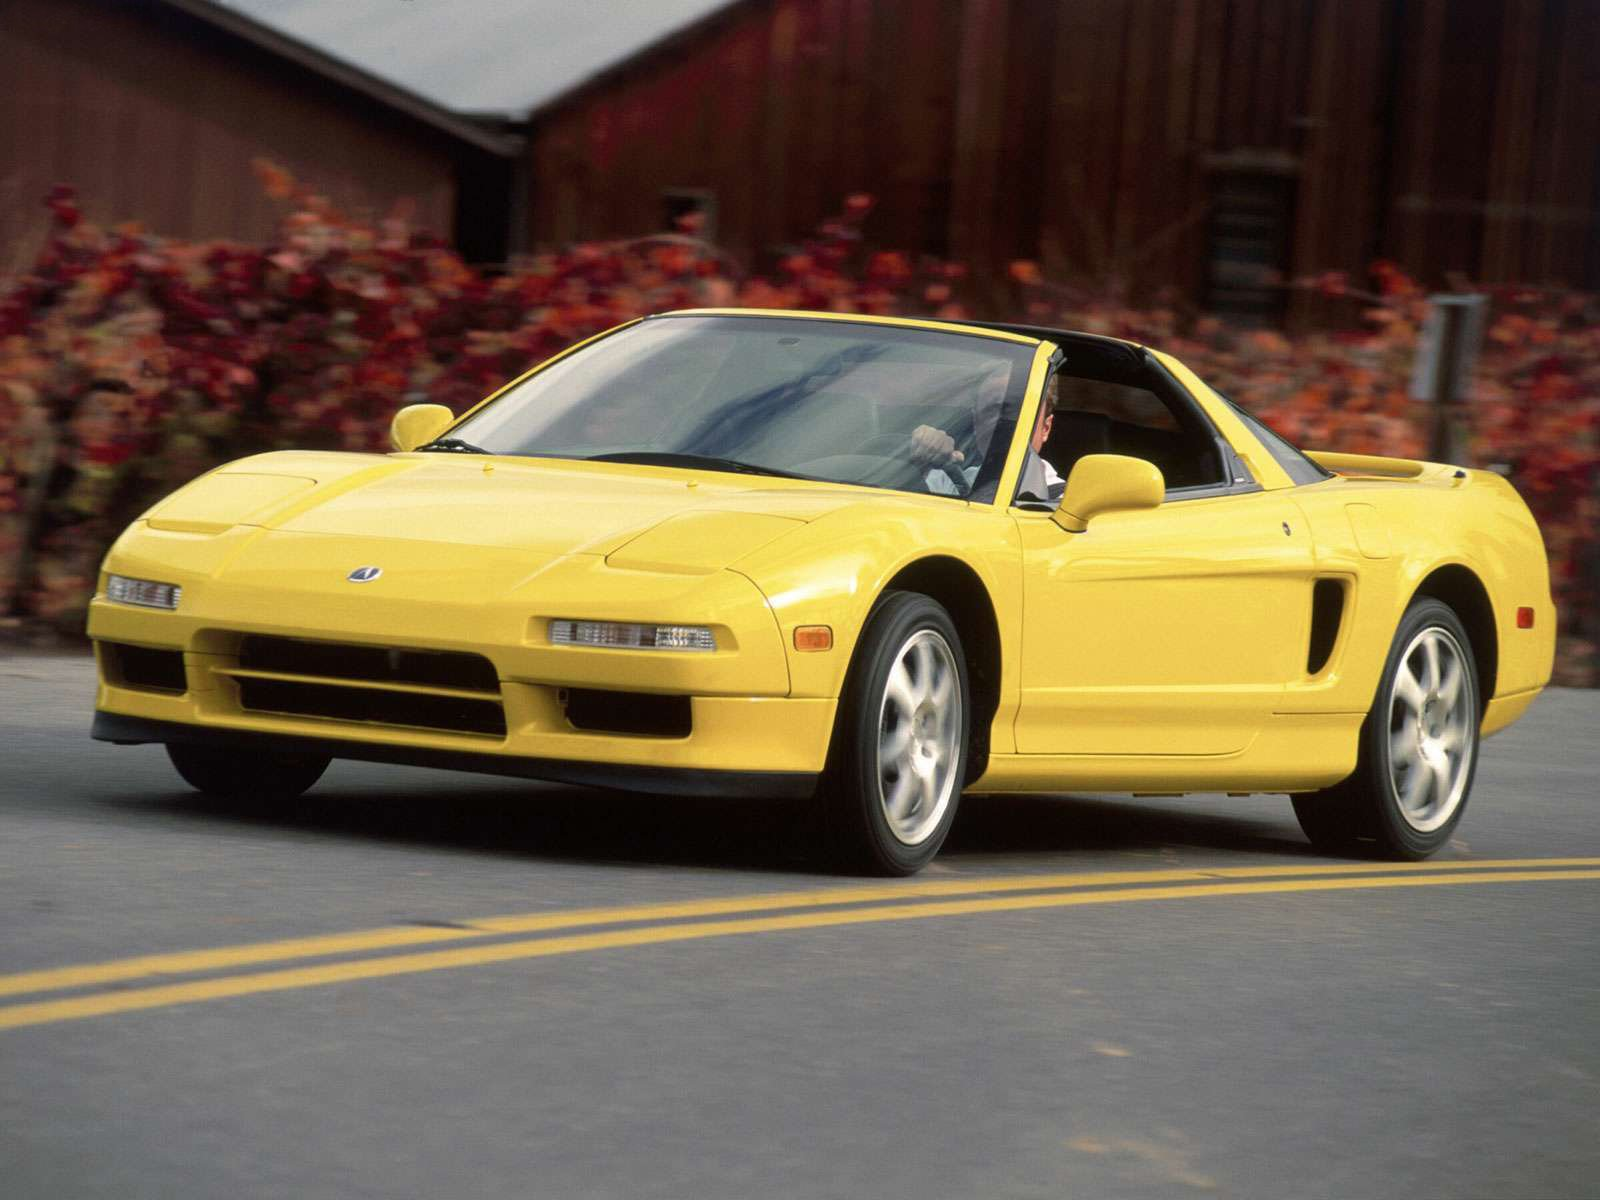 Latest 2001 Acura Nsx T Car Wallpapers Accident Lawyers Info Free Download